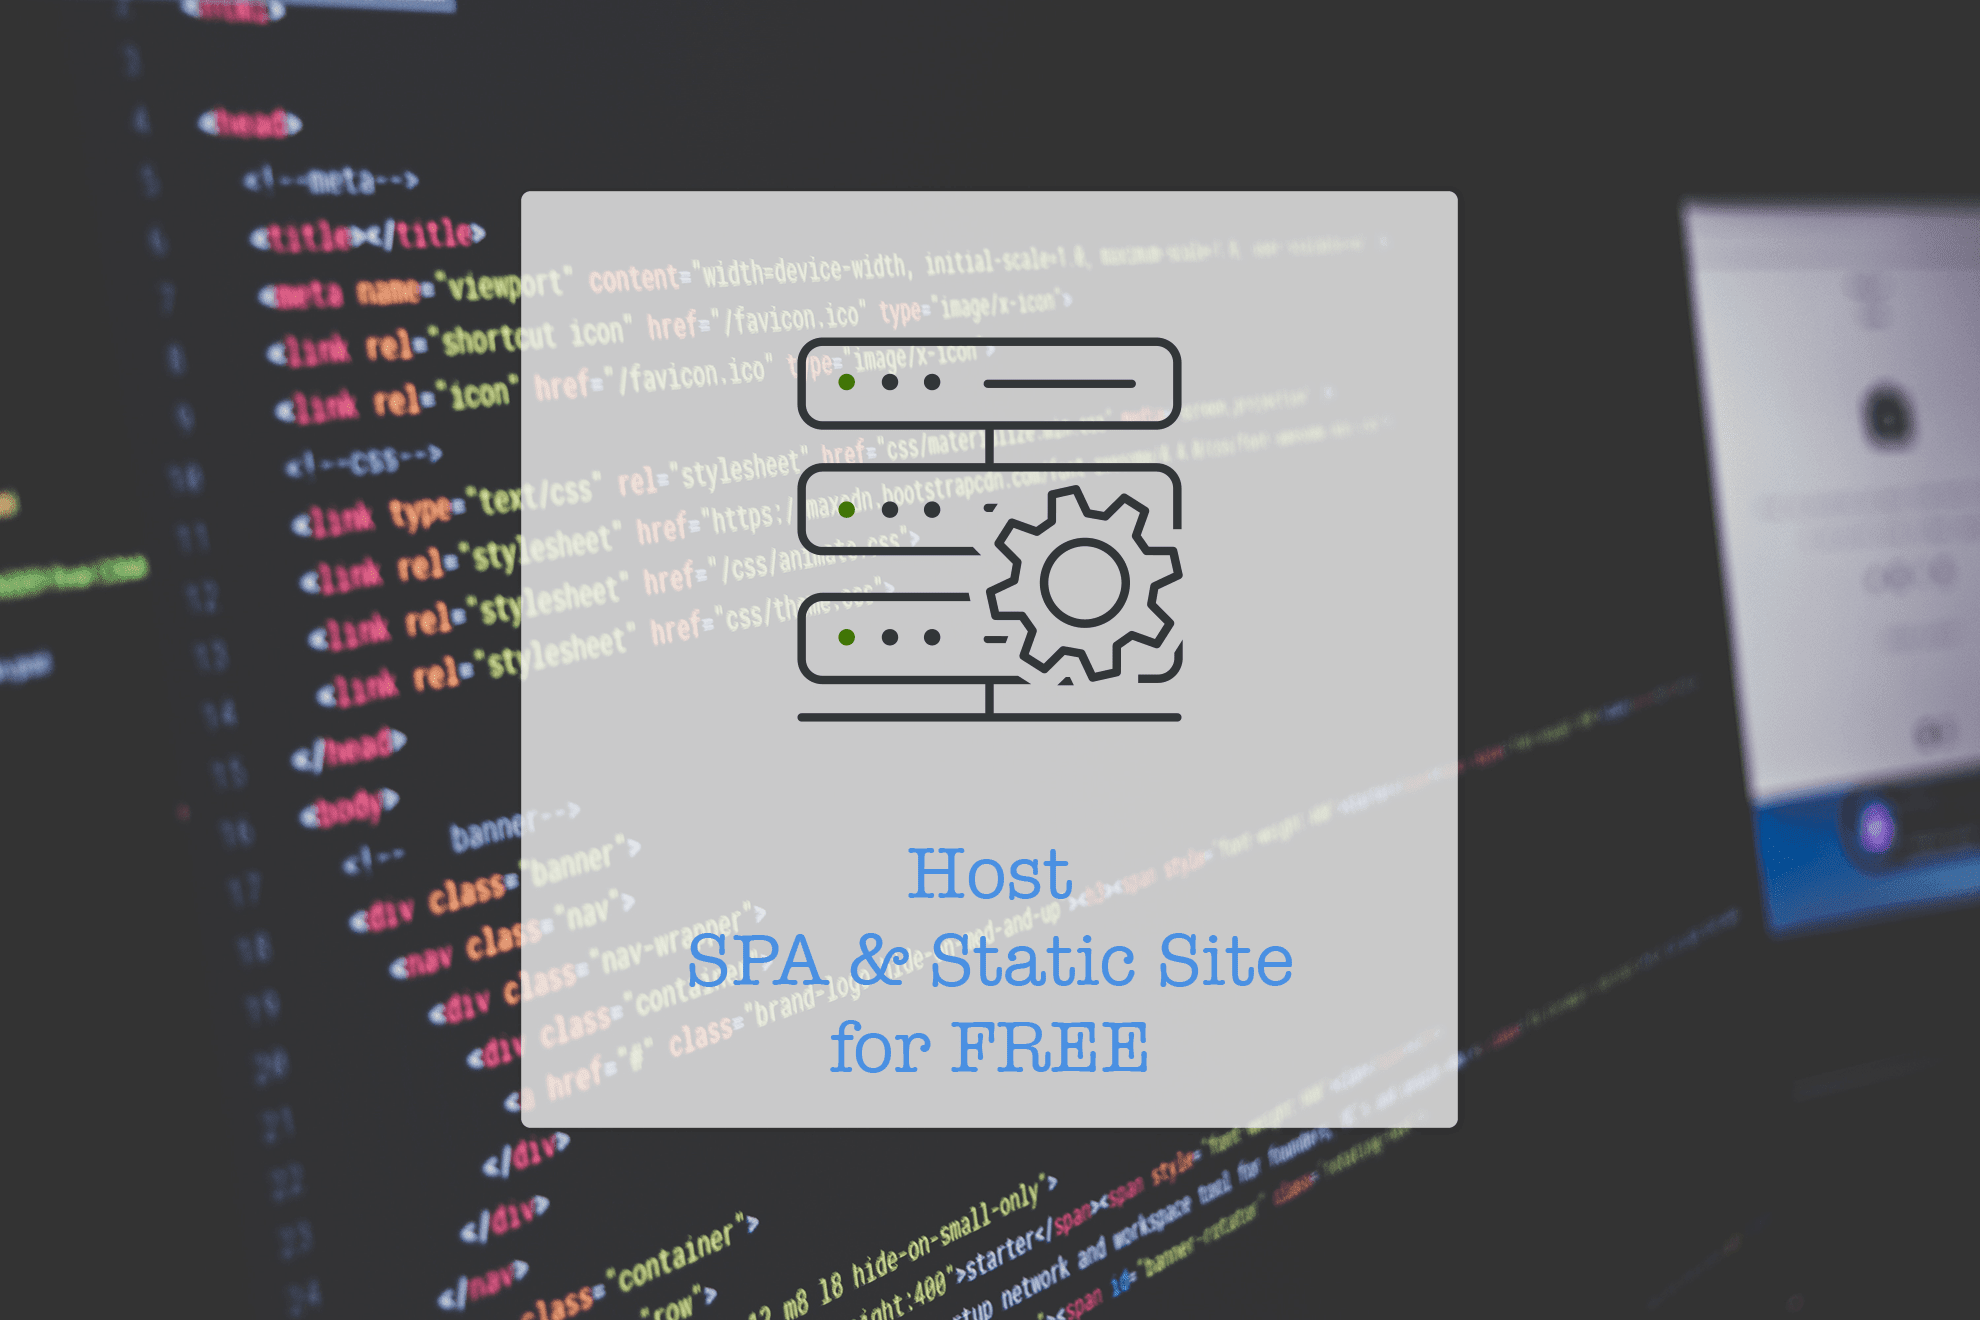 Ways to host single page application (SPA) and Static Site for FREE